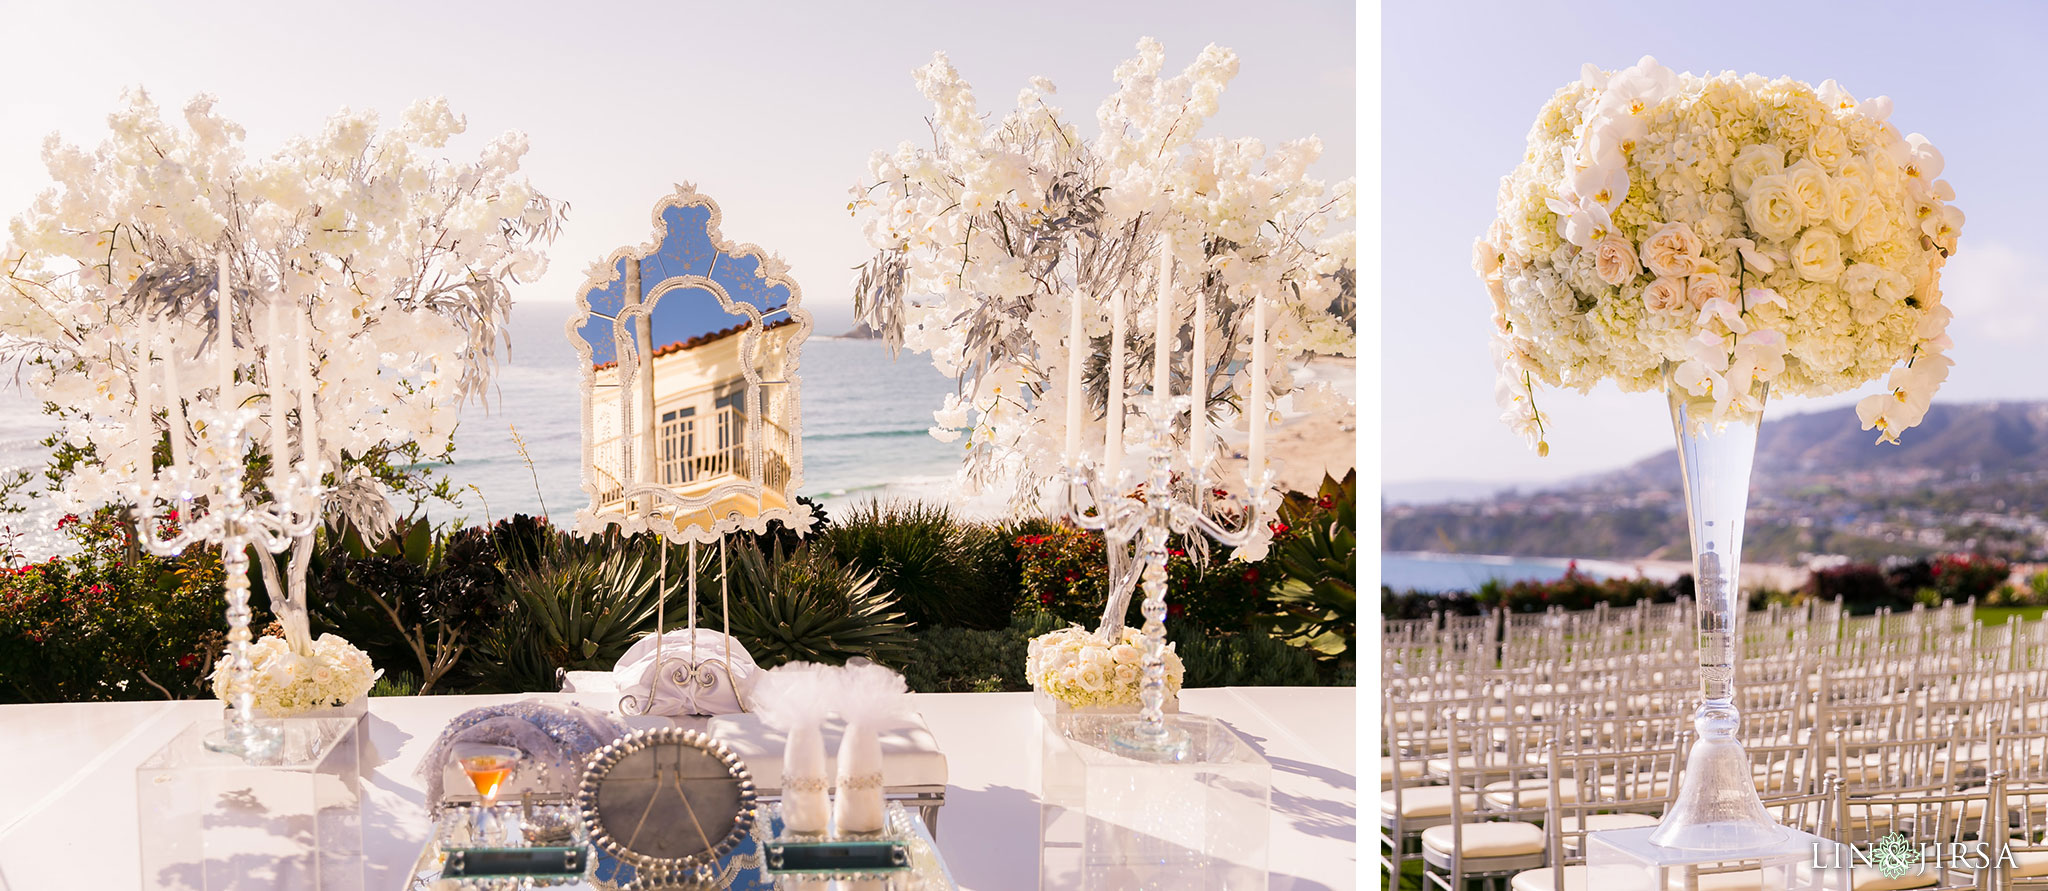 14 ritz carlton laguna niguel persian wedding sofreh ceremony photography